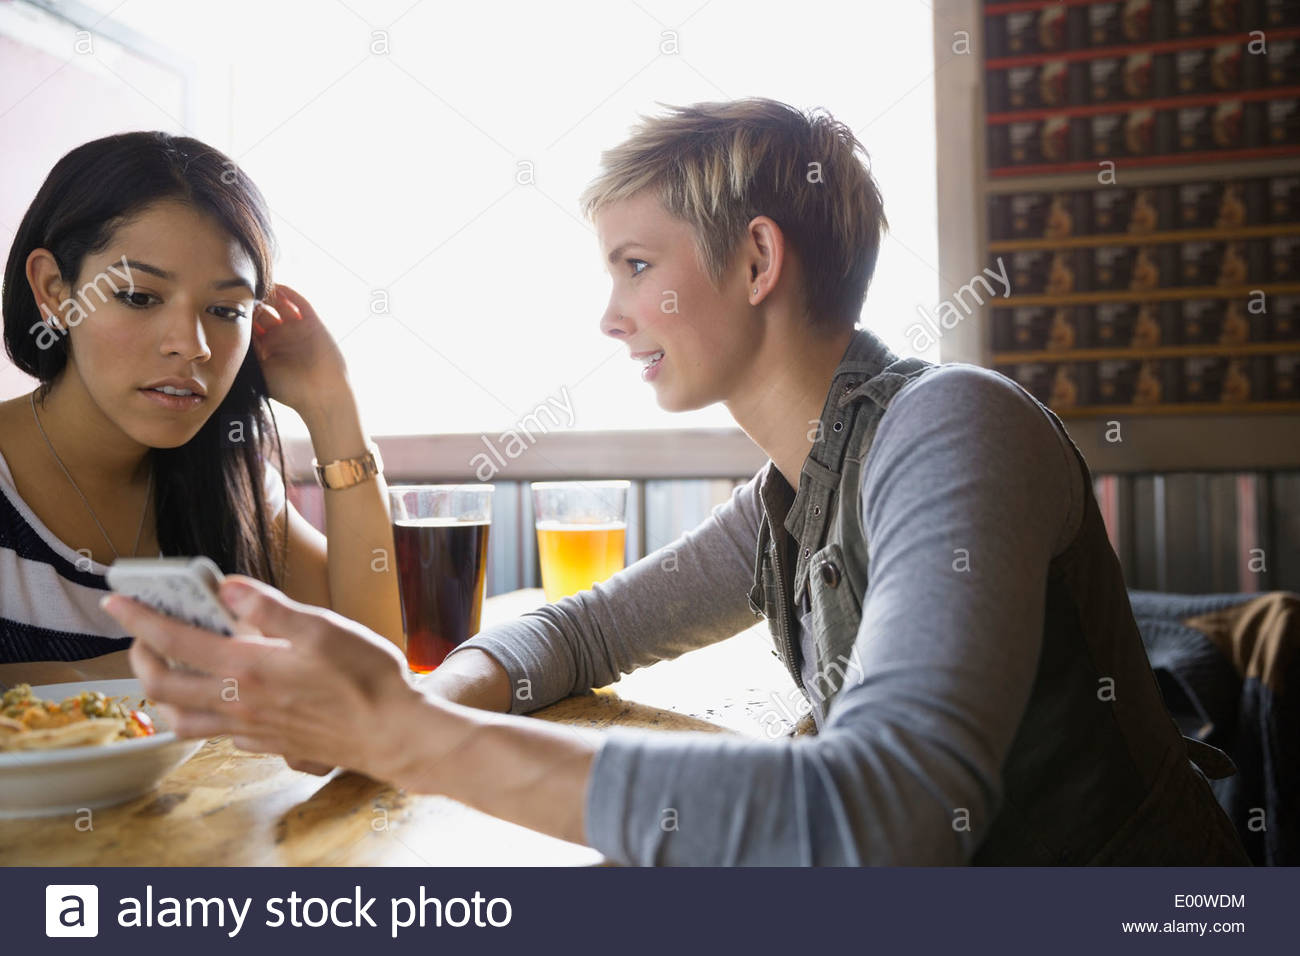 Women text messaging with cell phone at brewery - Stock Image